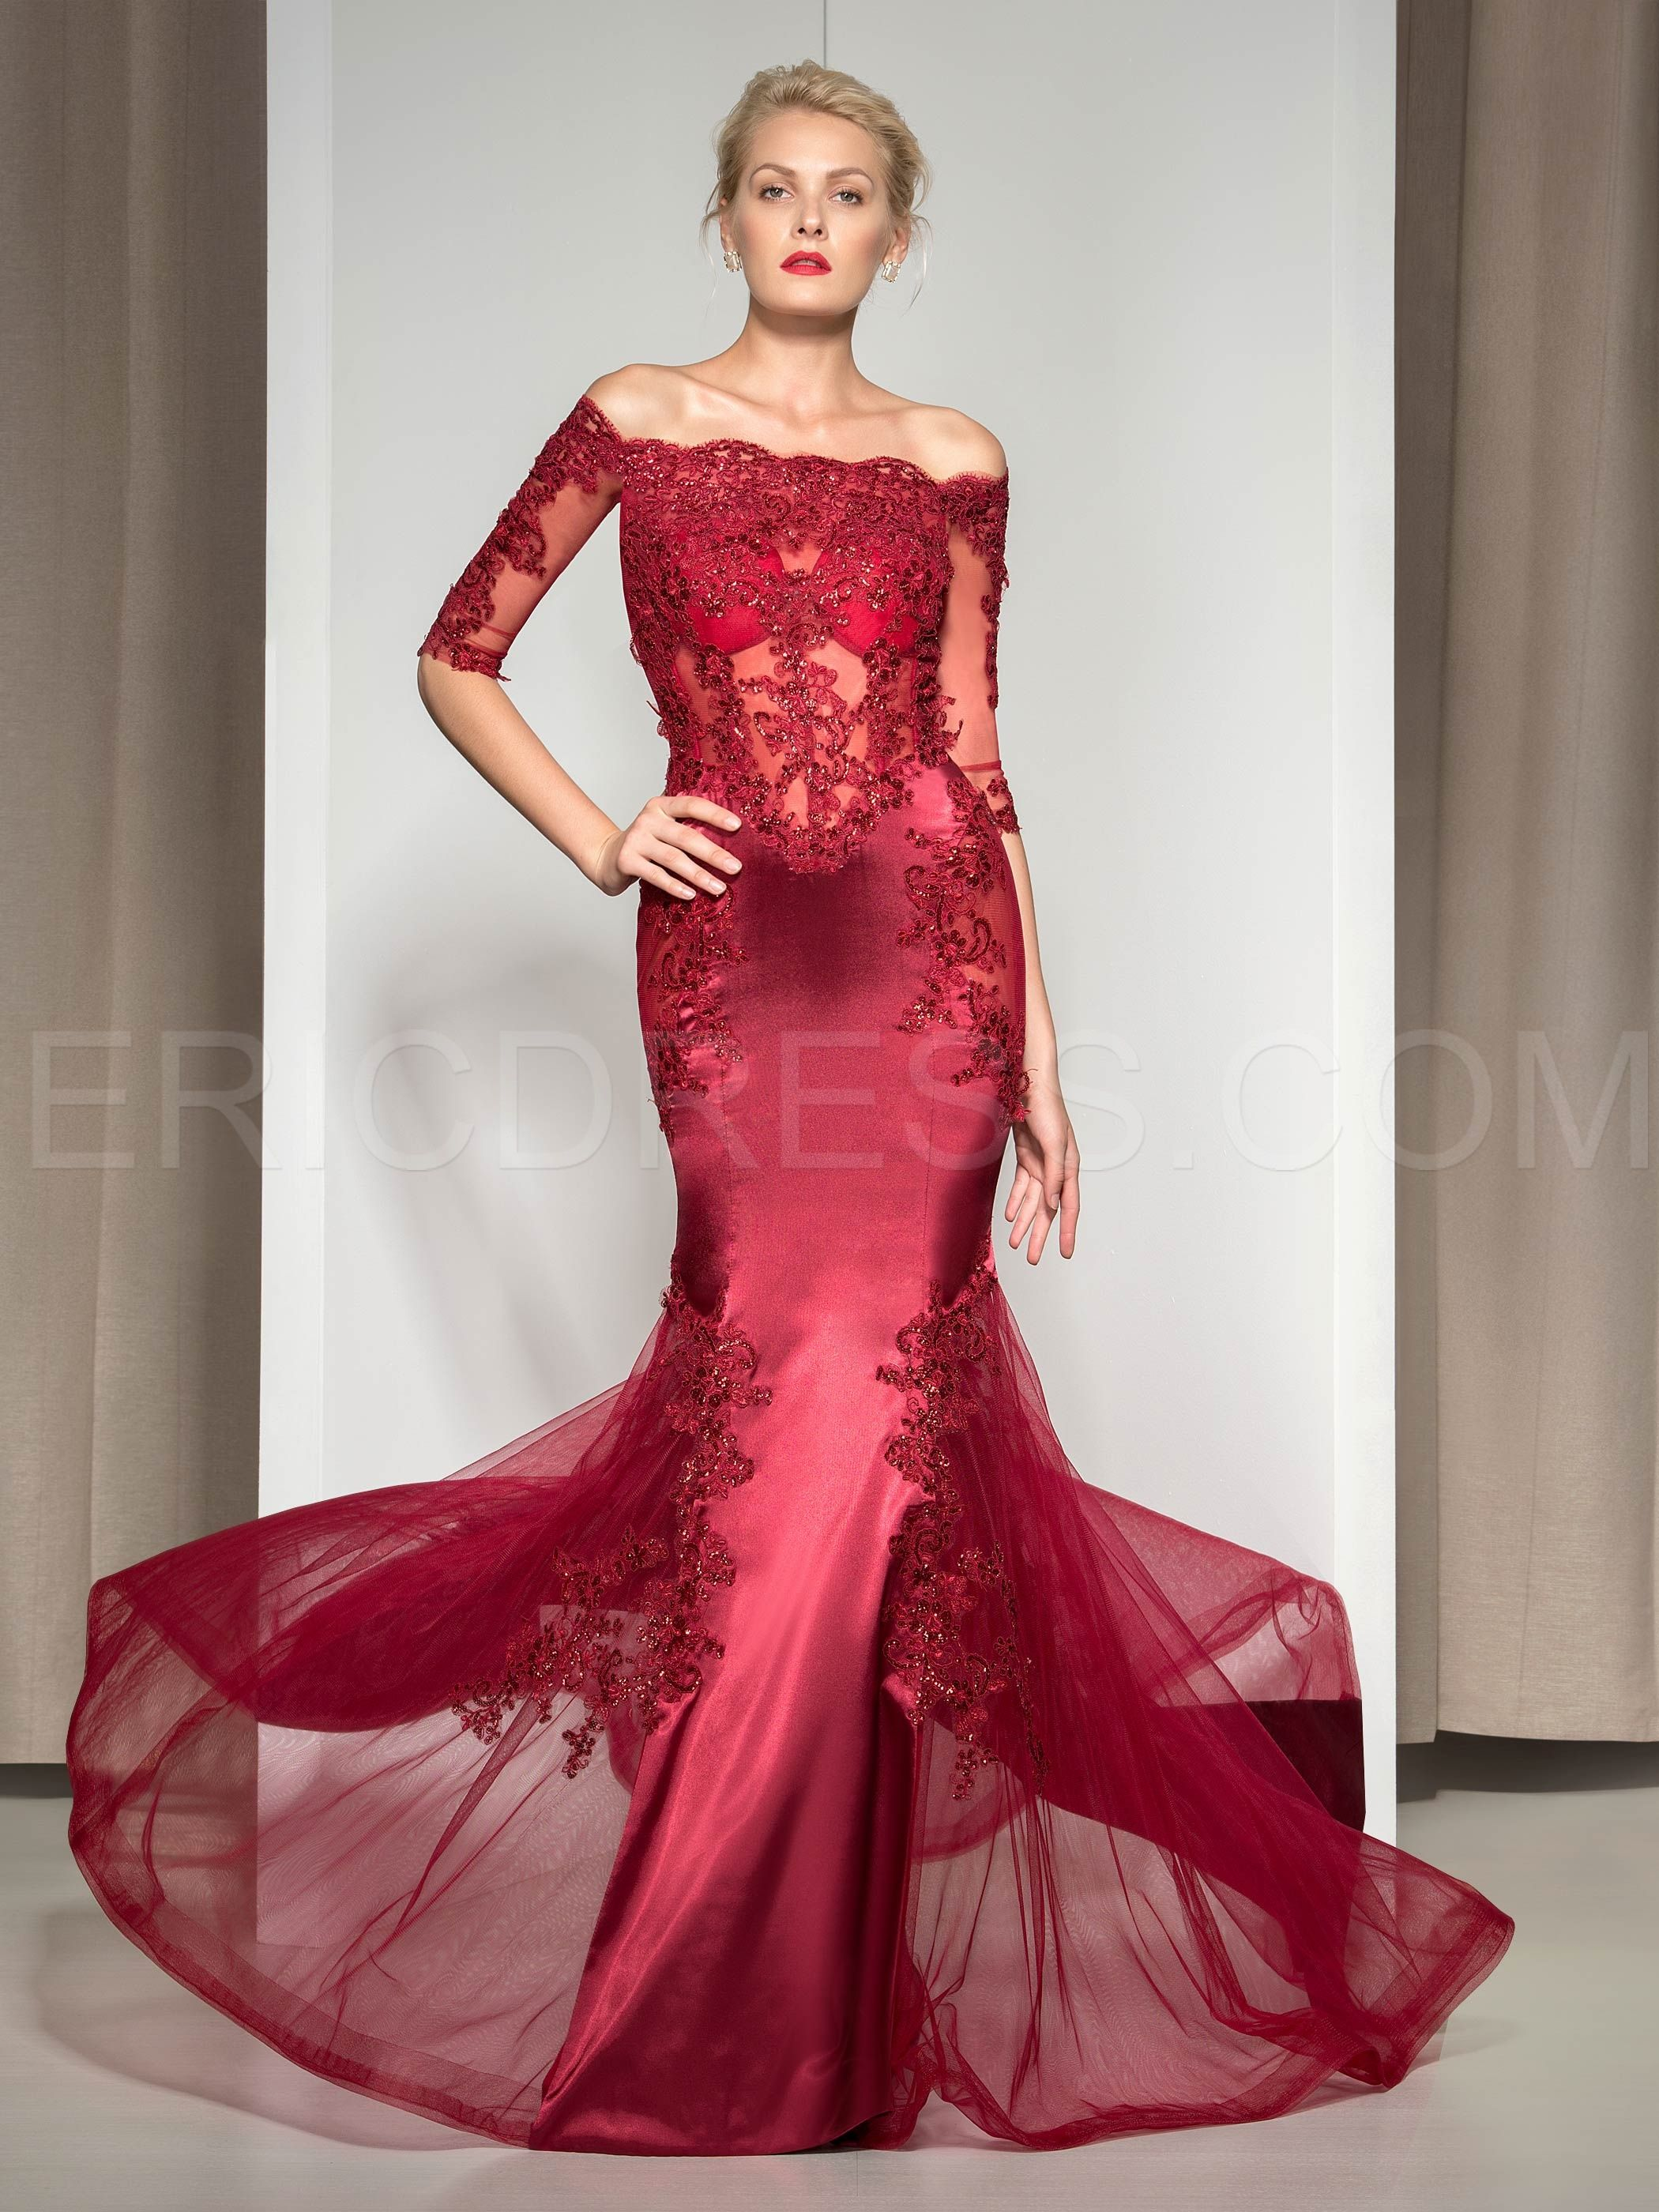 81b1673430e8 ericdress.com offers high quality Ericdress Off-The-Shoulder Appliques  Sequins Mermaid Evening Dress Vintage Evening Dresses unit price of $  134.99.